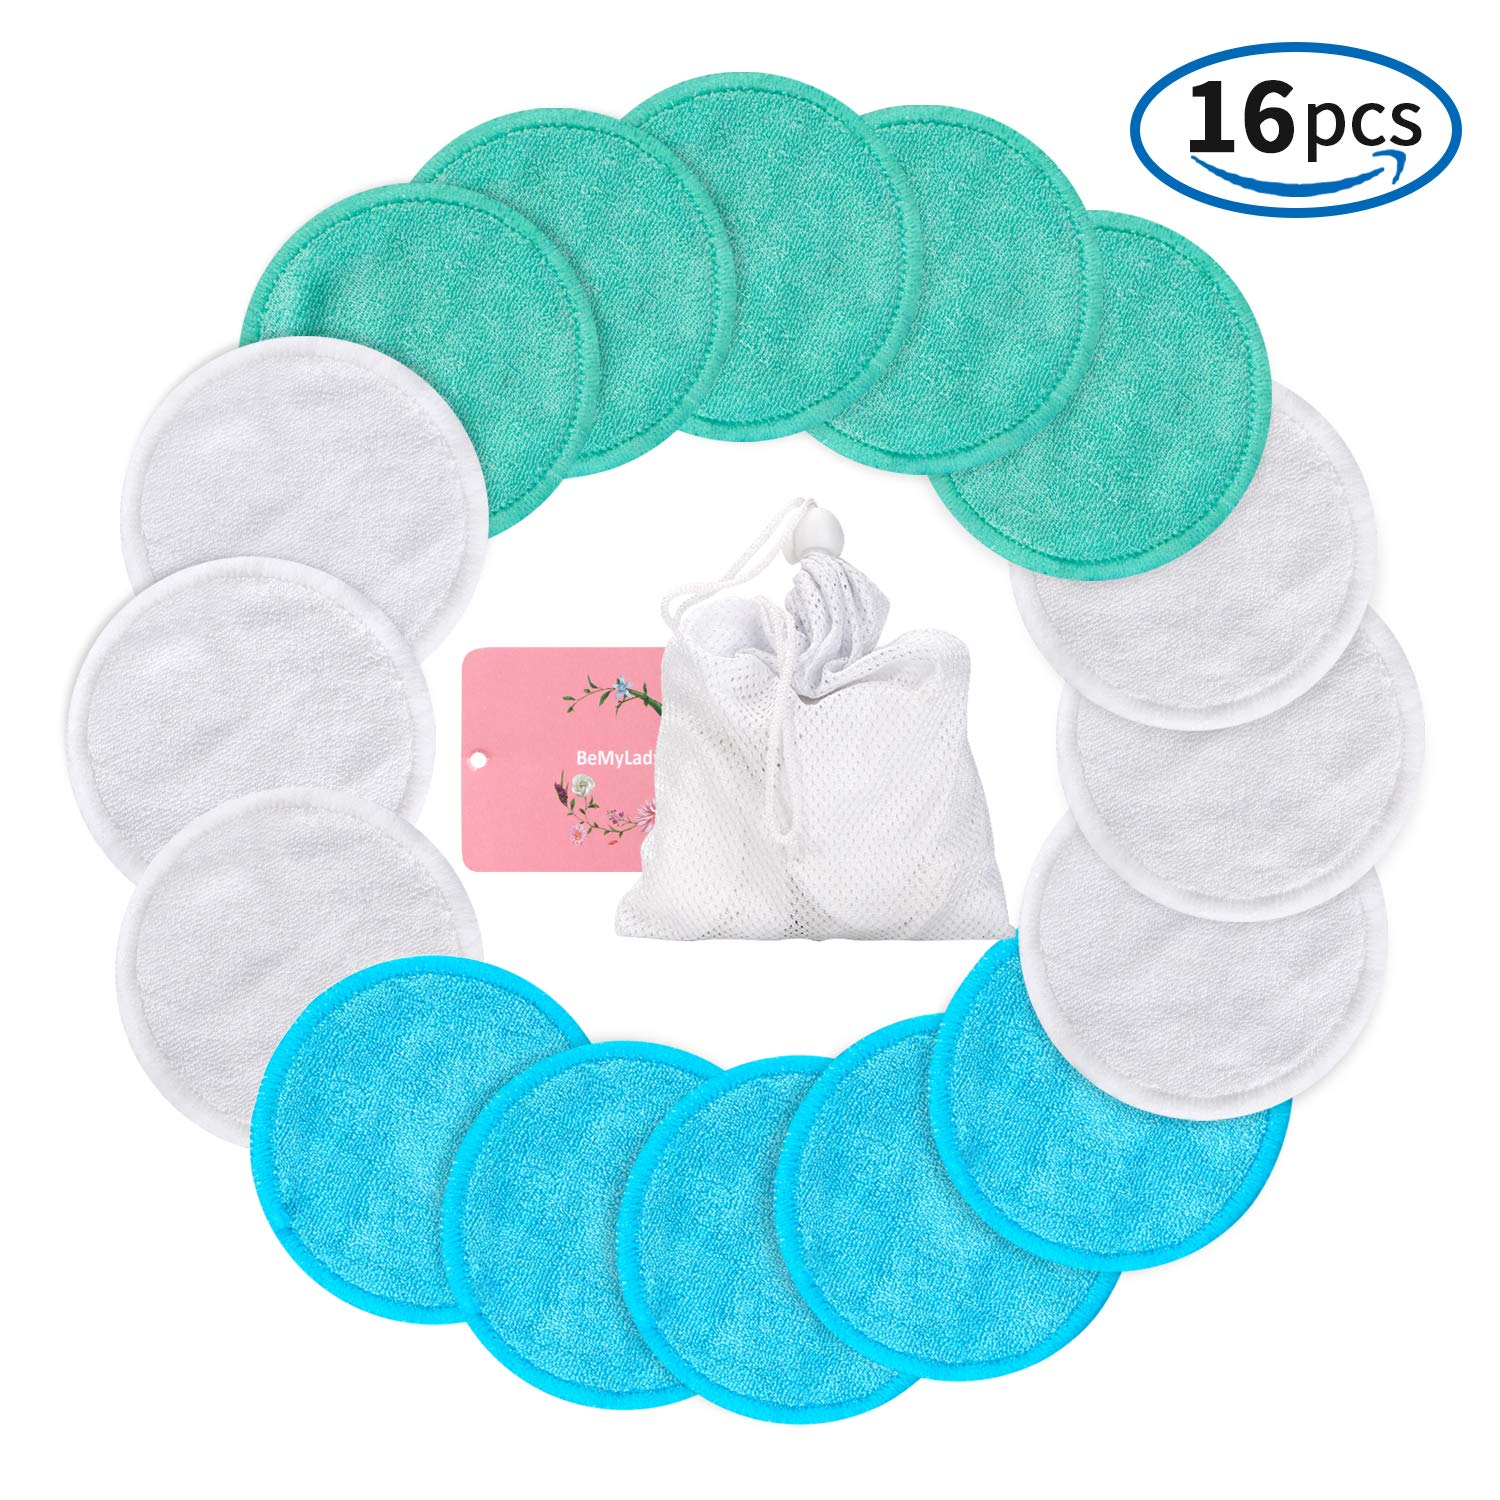 Makeup Remover Pads Reusable 16 Packs, Toner Pads, Facial Soft Cleansing Wipes, Washable Organic Bamboo Cotton Rounds with Laundry Bag (3 Colors) … BBing